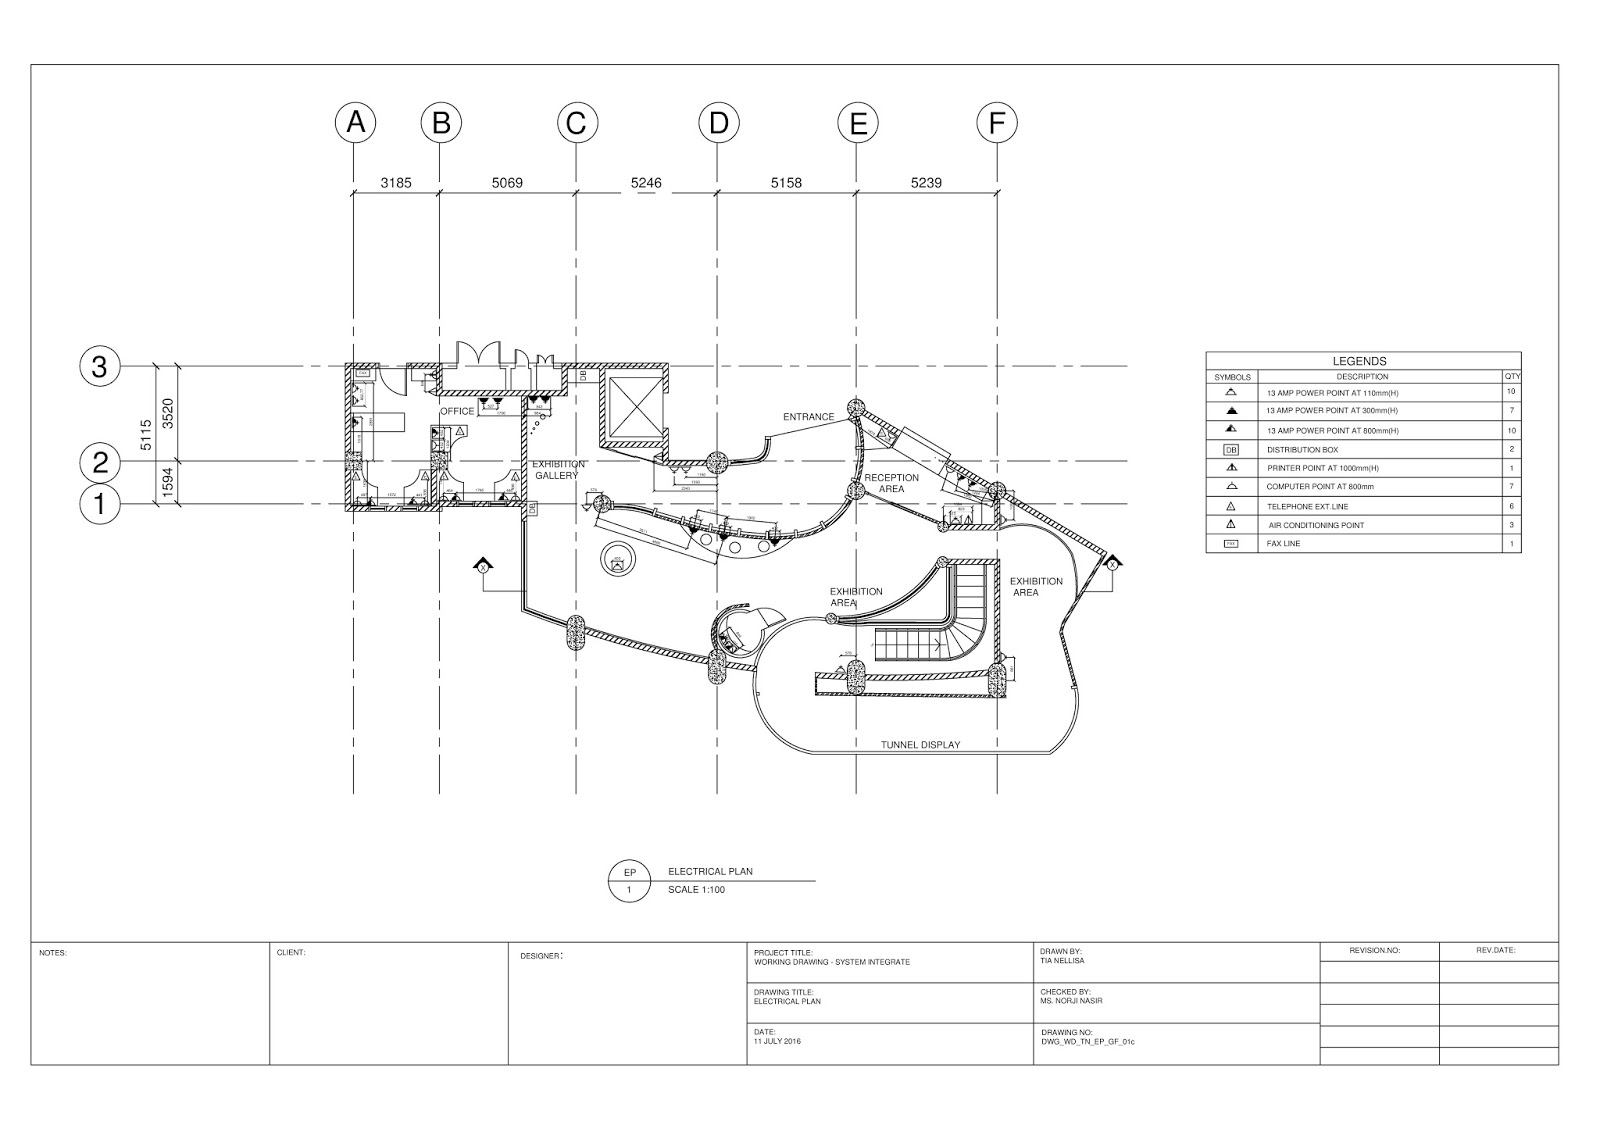 medium resolution of reflected ceiling plan electrical plan